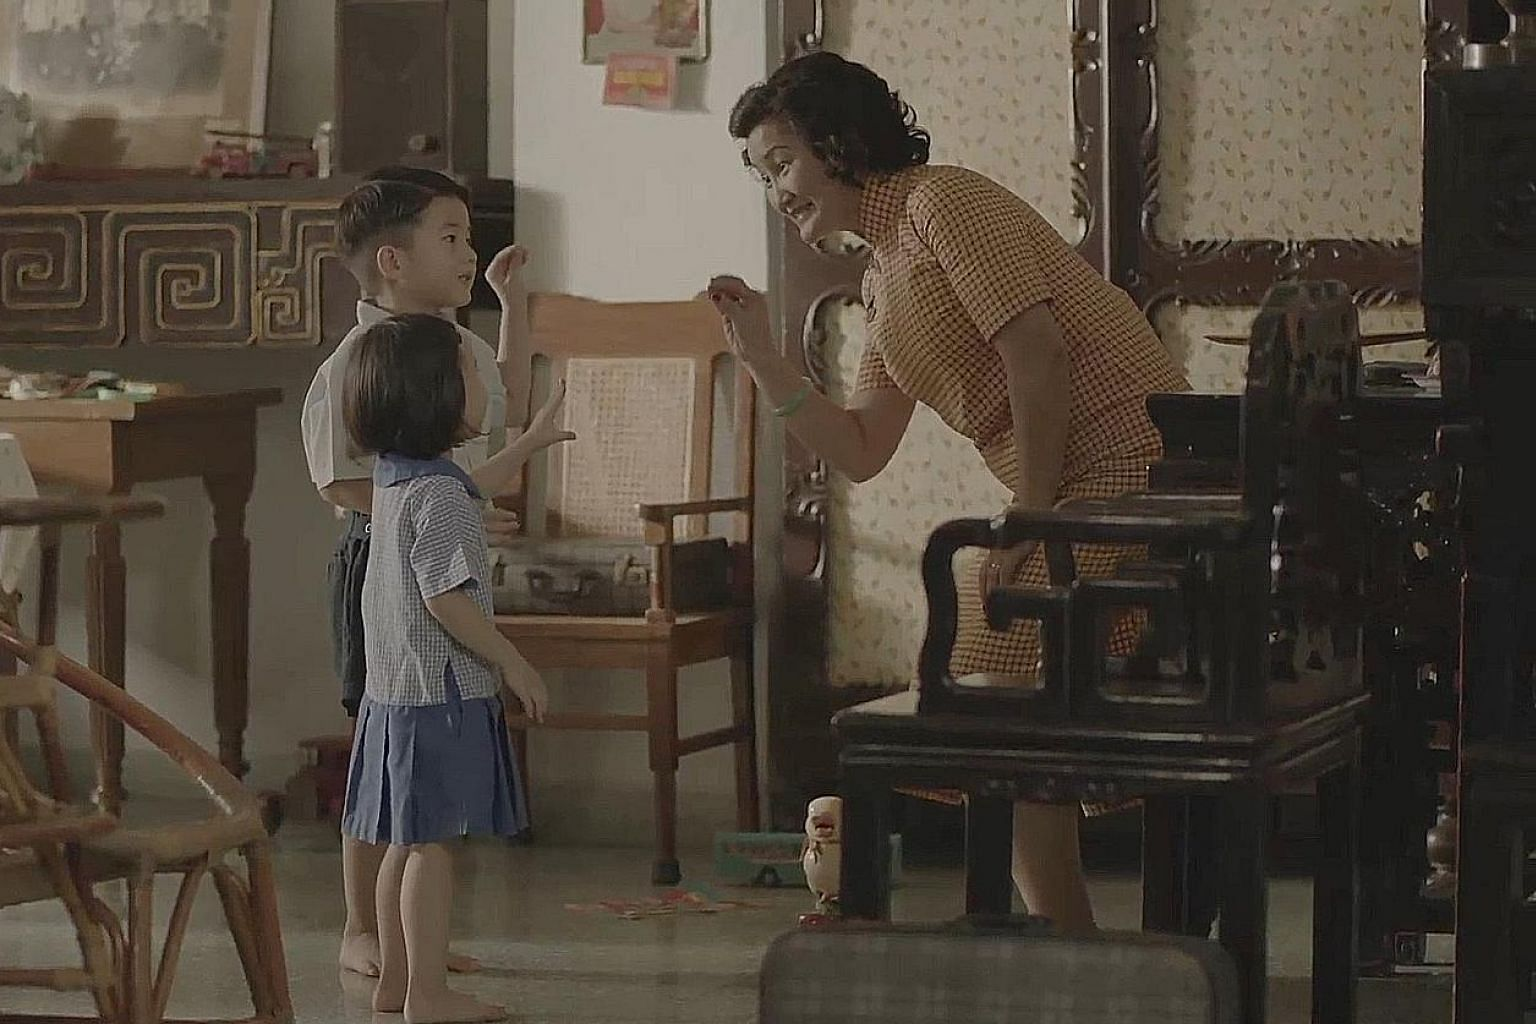 In The Veiled Willow from the 667 collection of short works, film-maker Eva Tang explores the language of Cantonese food and female hierarchies in the 1960s.